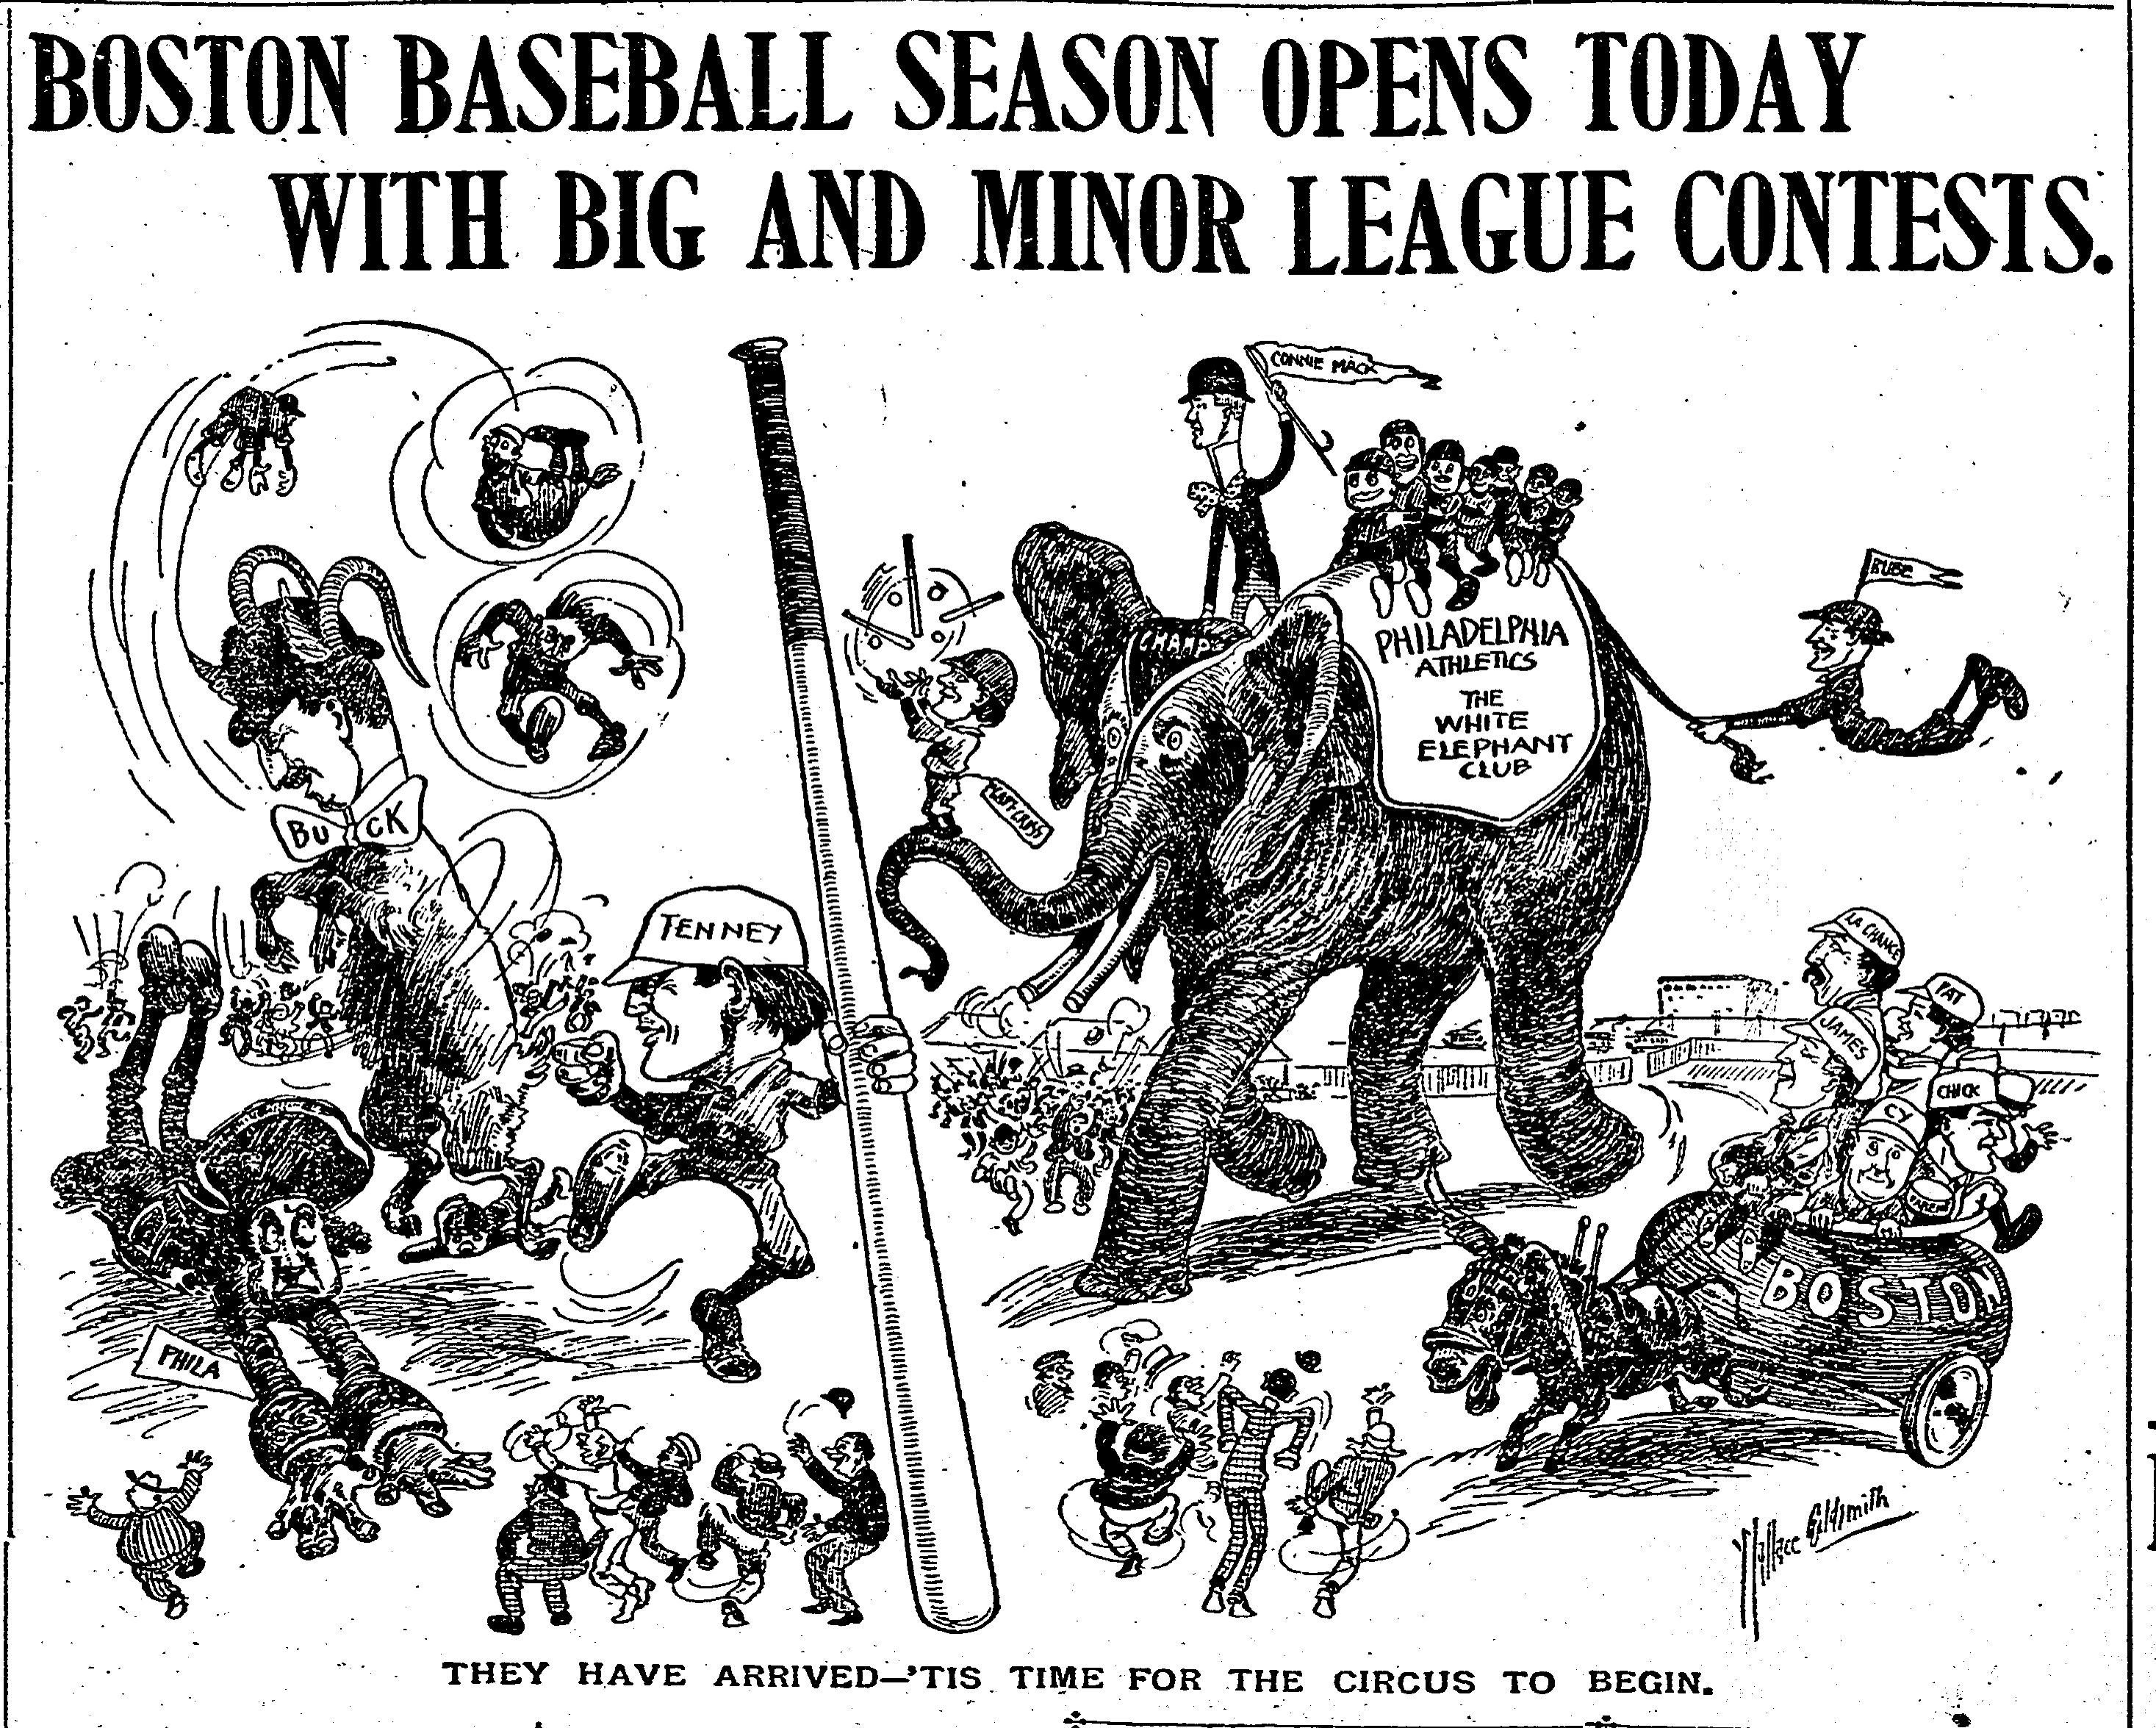 Boston Herald cartoon, April 20, 1903